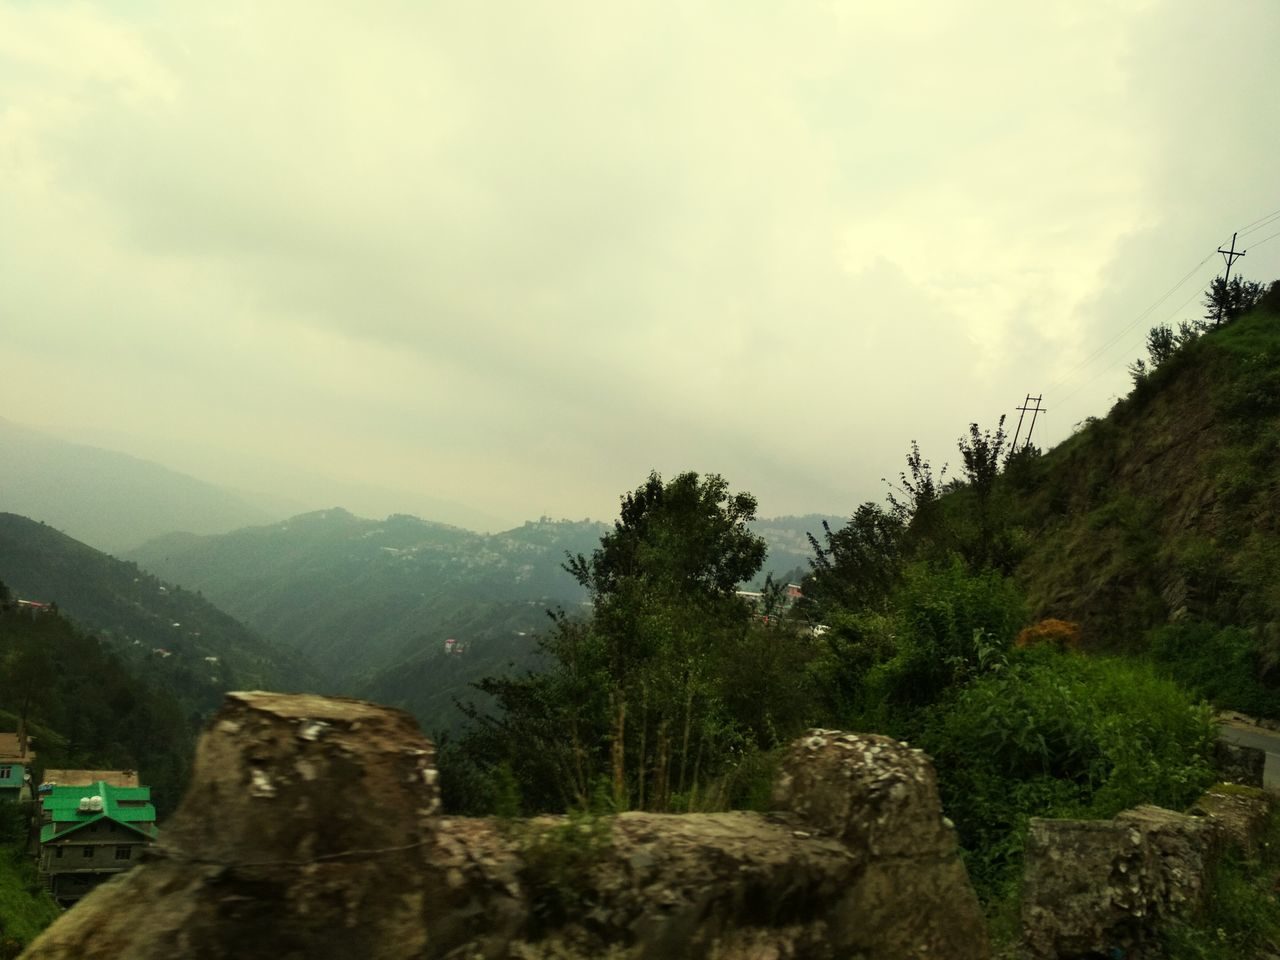 mountain, nature, sky, no people, beauty in nature, landscape, outdoors, day